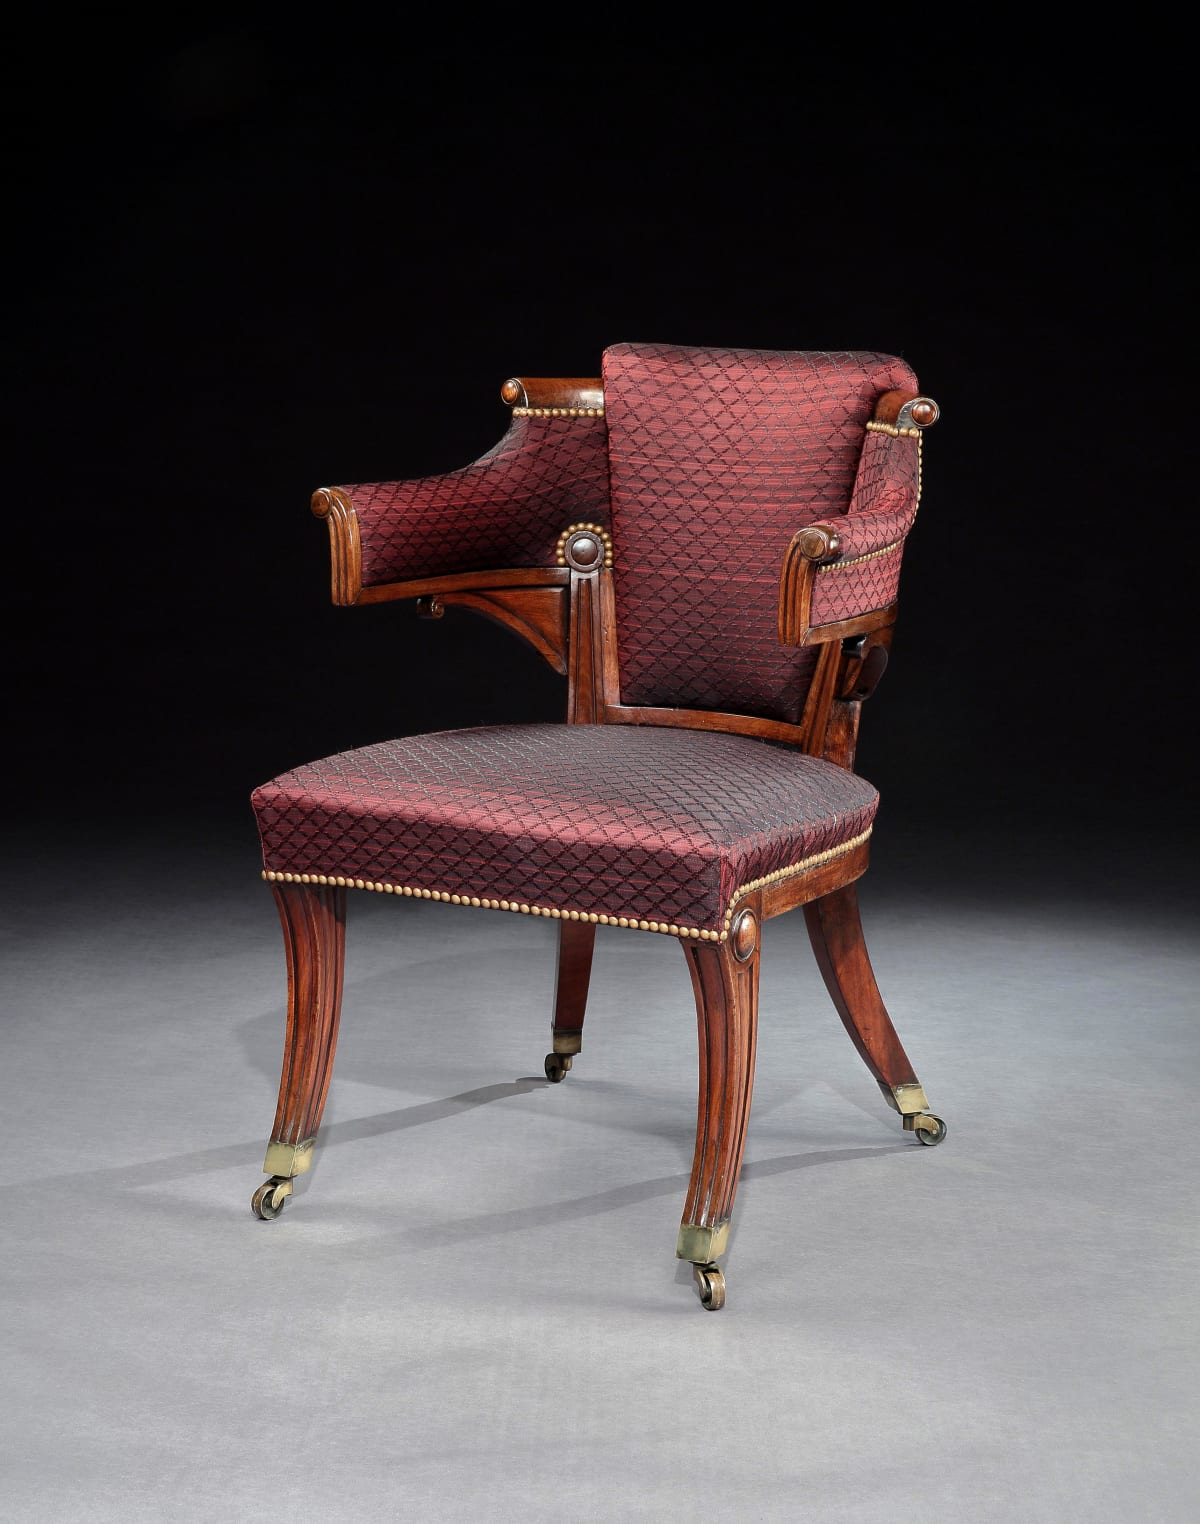 A GEORGE III REGENCY ARMCHAIR, ENGLISH, CIRCA 1815